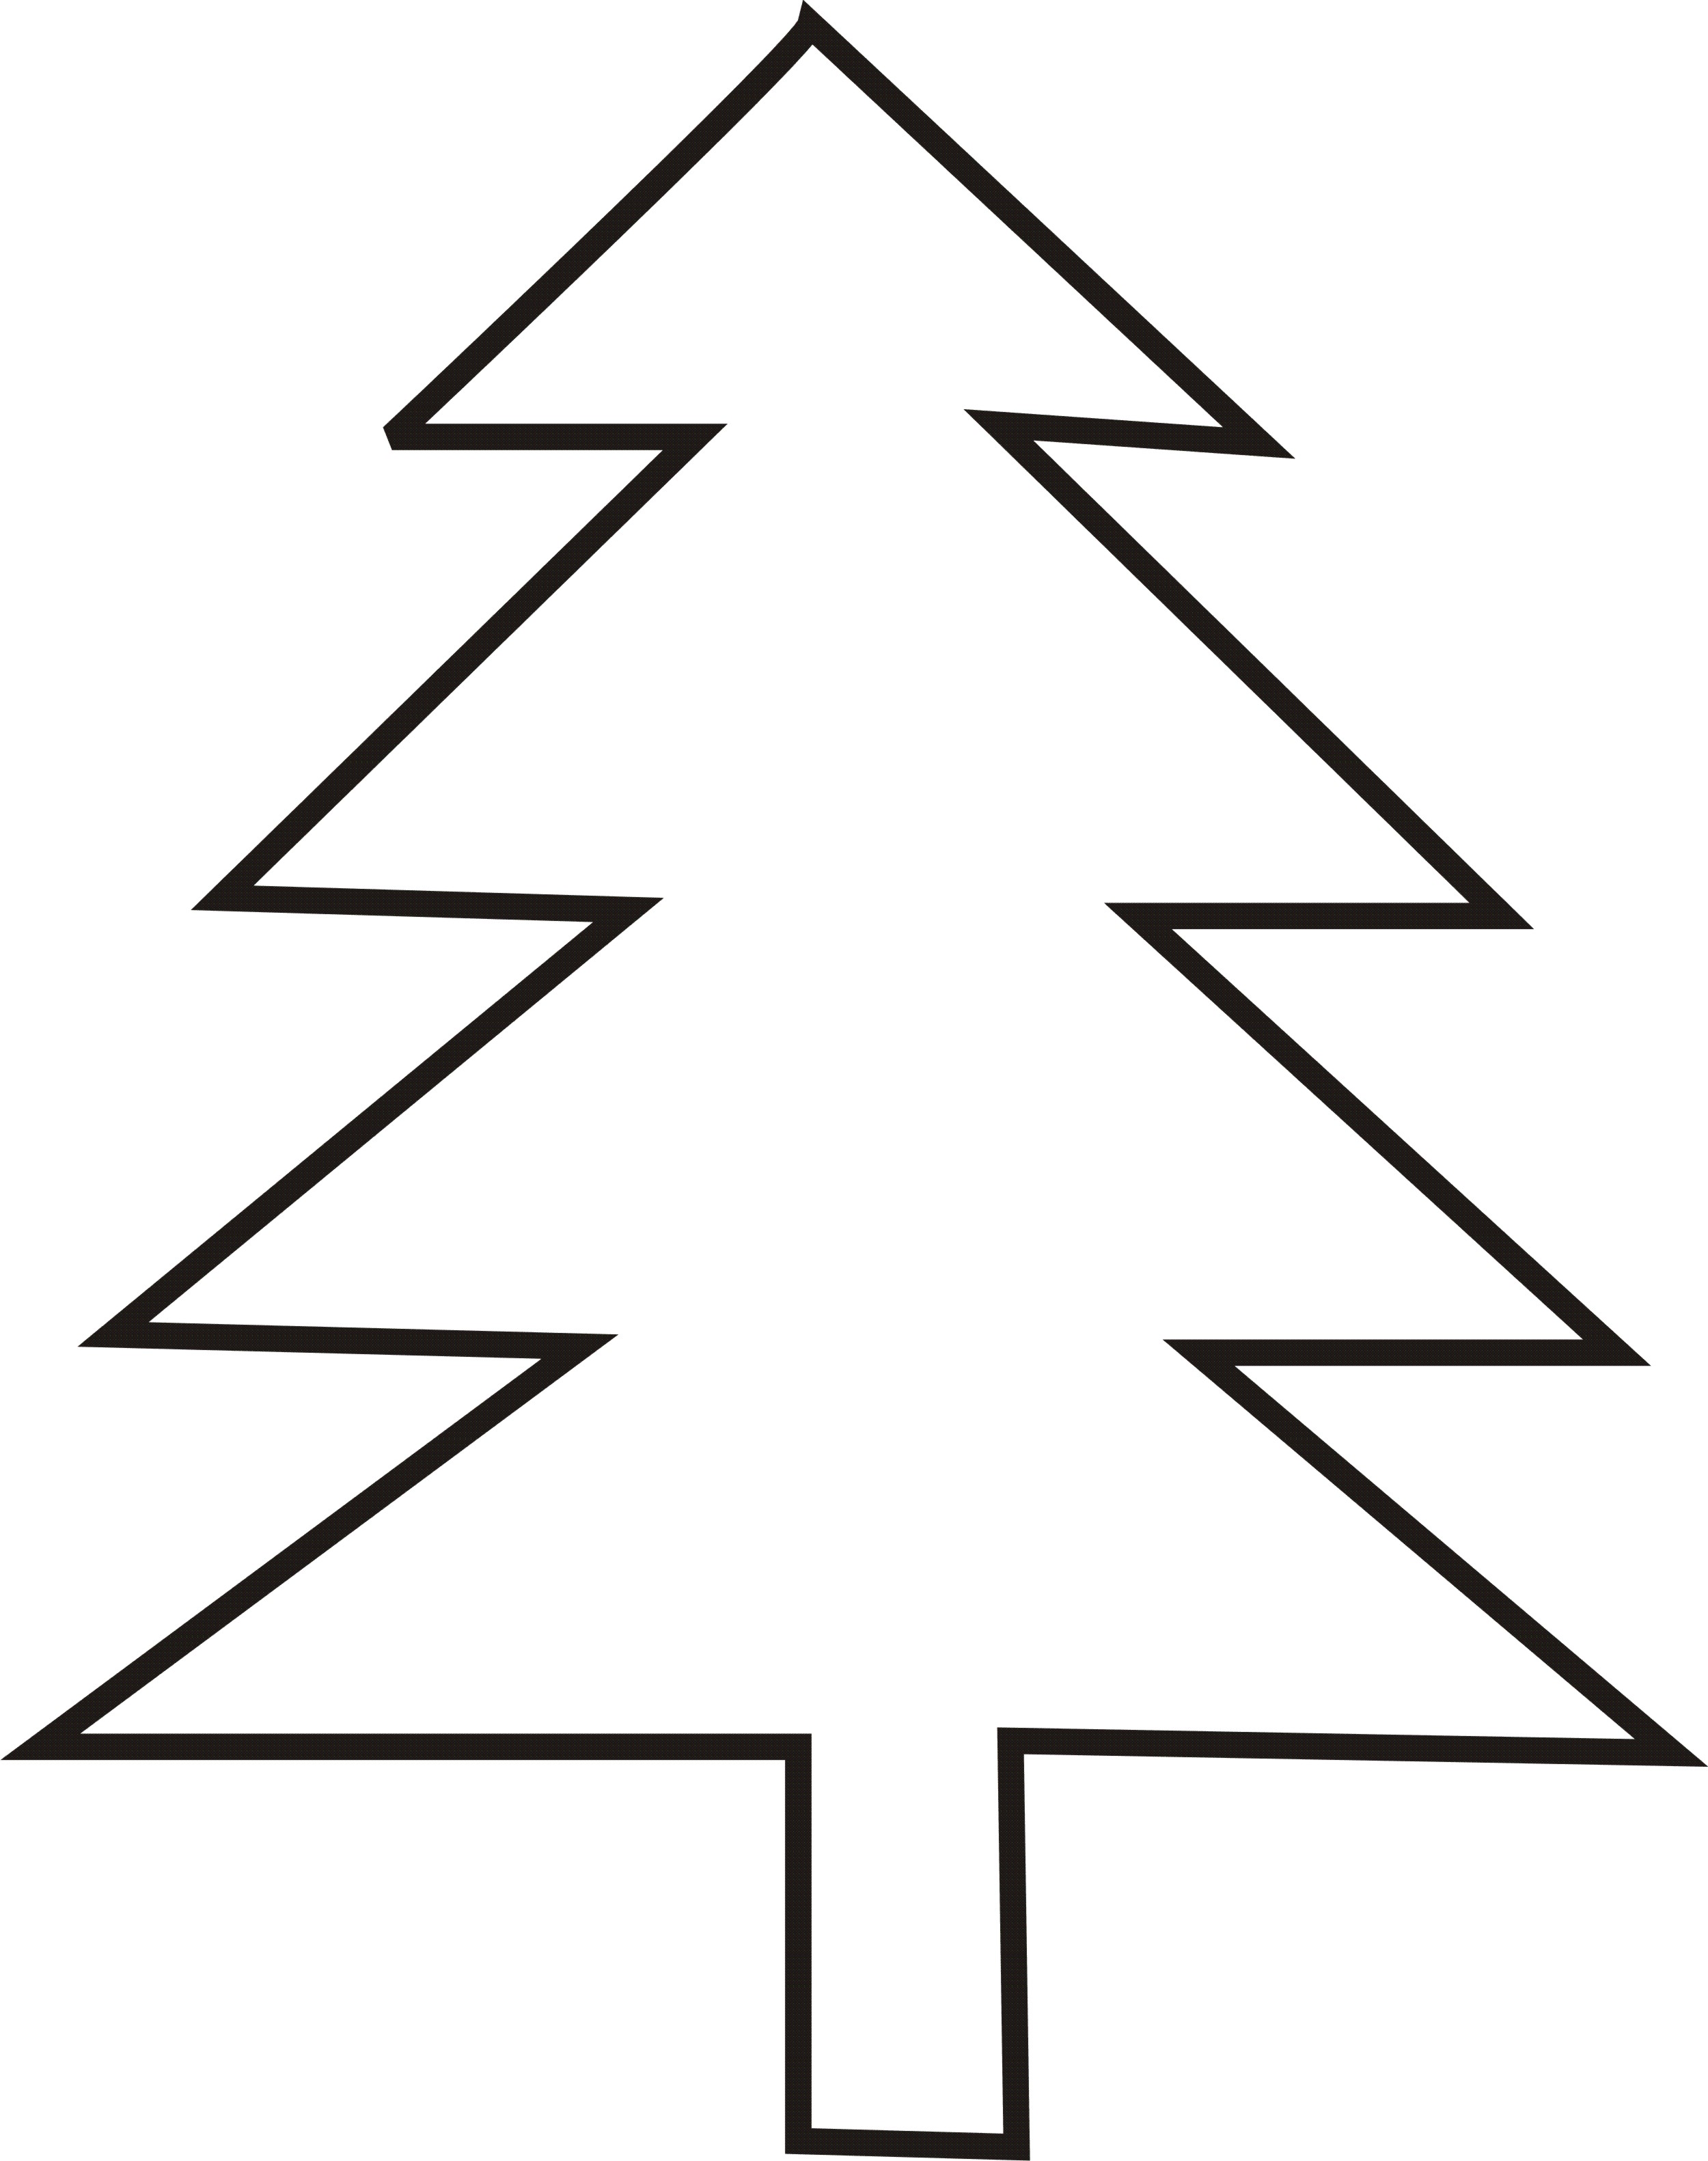 Dead Tree Outline likewise T Shirt Template Clip Art 19107 furthermore Christmas Tree Outline Sketch Templates moreover Downloads 2924540 likewise . on christmas tree outlines